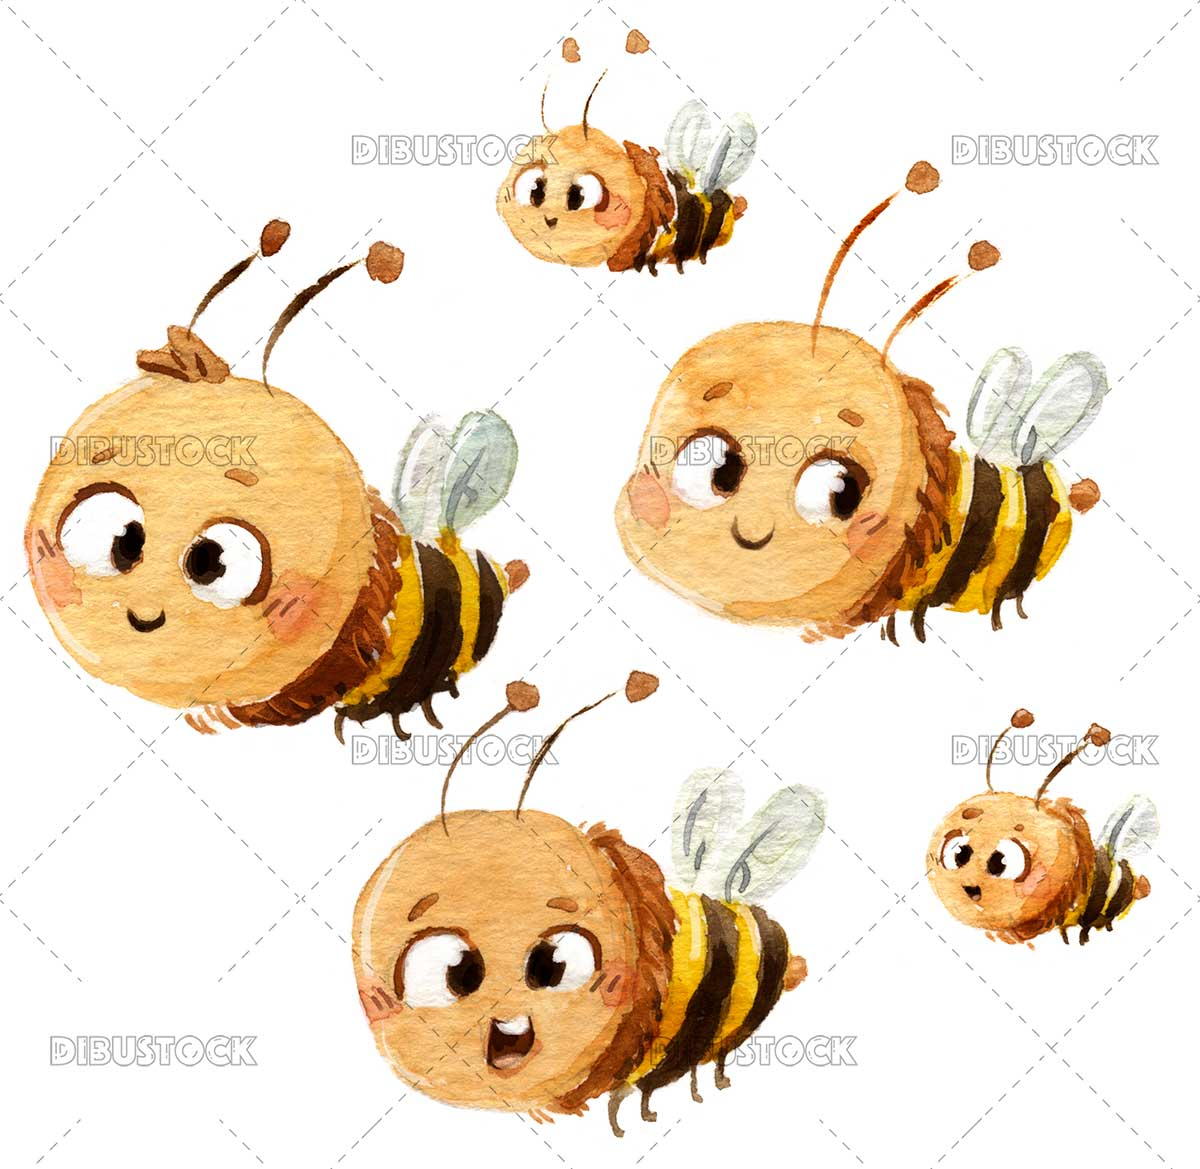 Group of bees flying